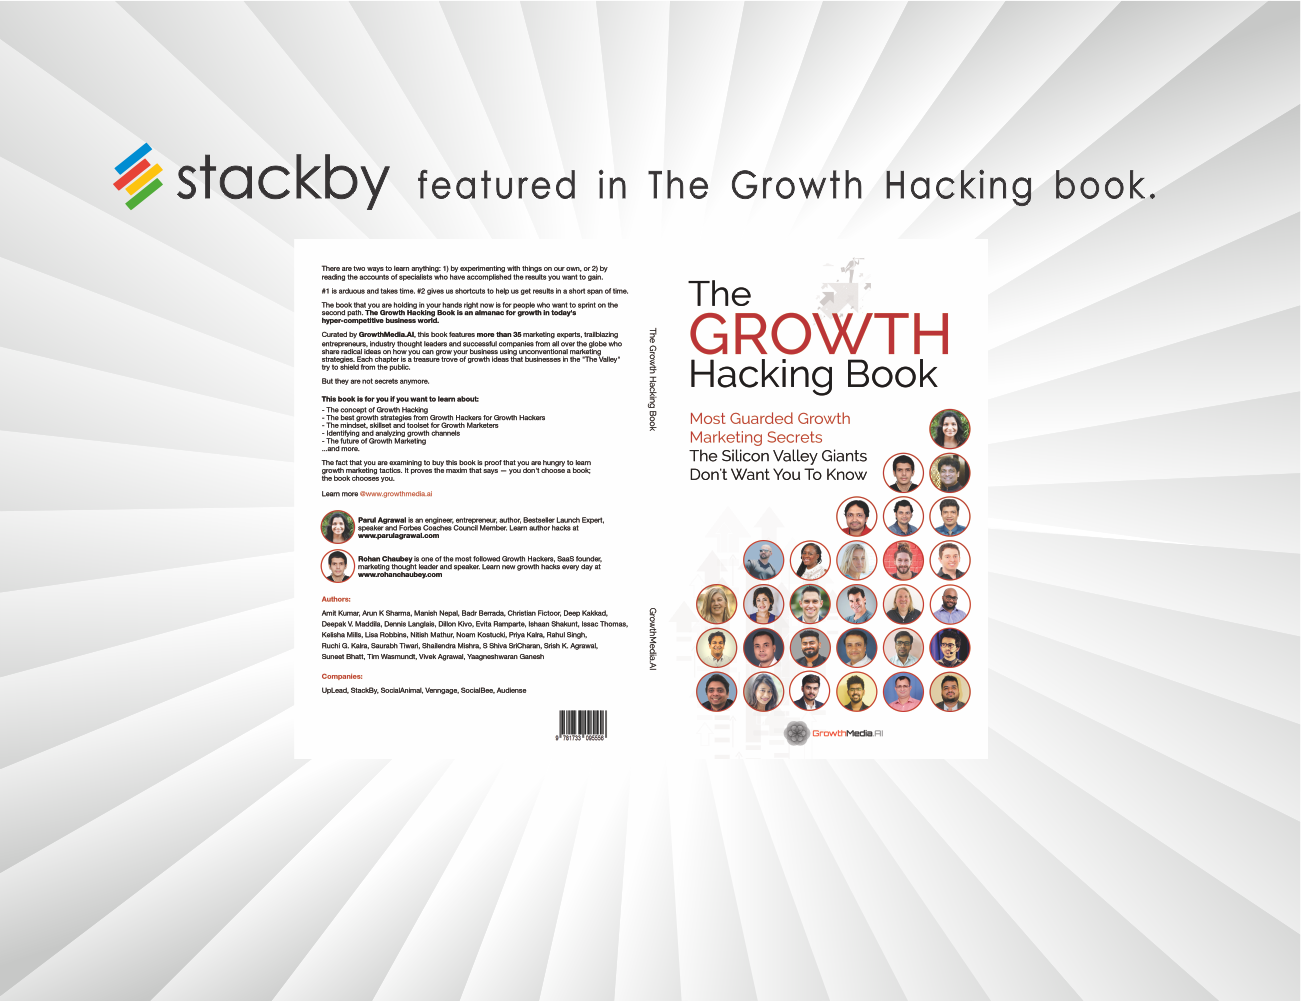 Stackby + The Growth Hacking Book = The Ultimate Growth Hacking Guide